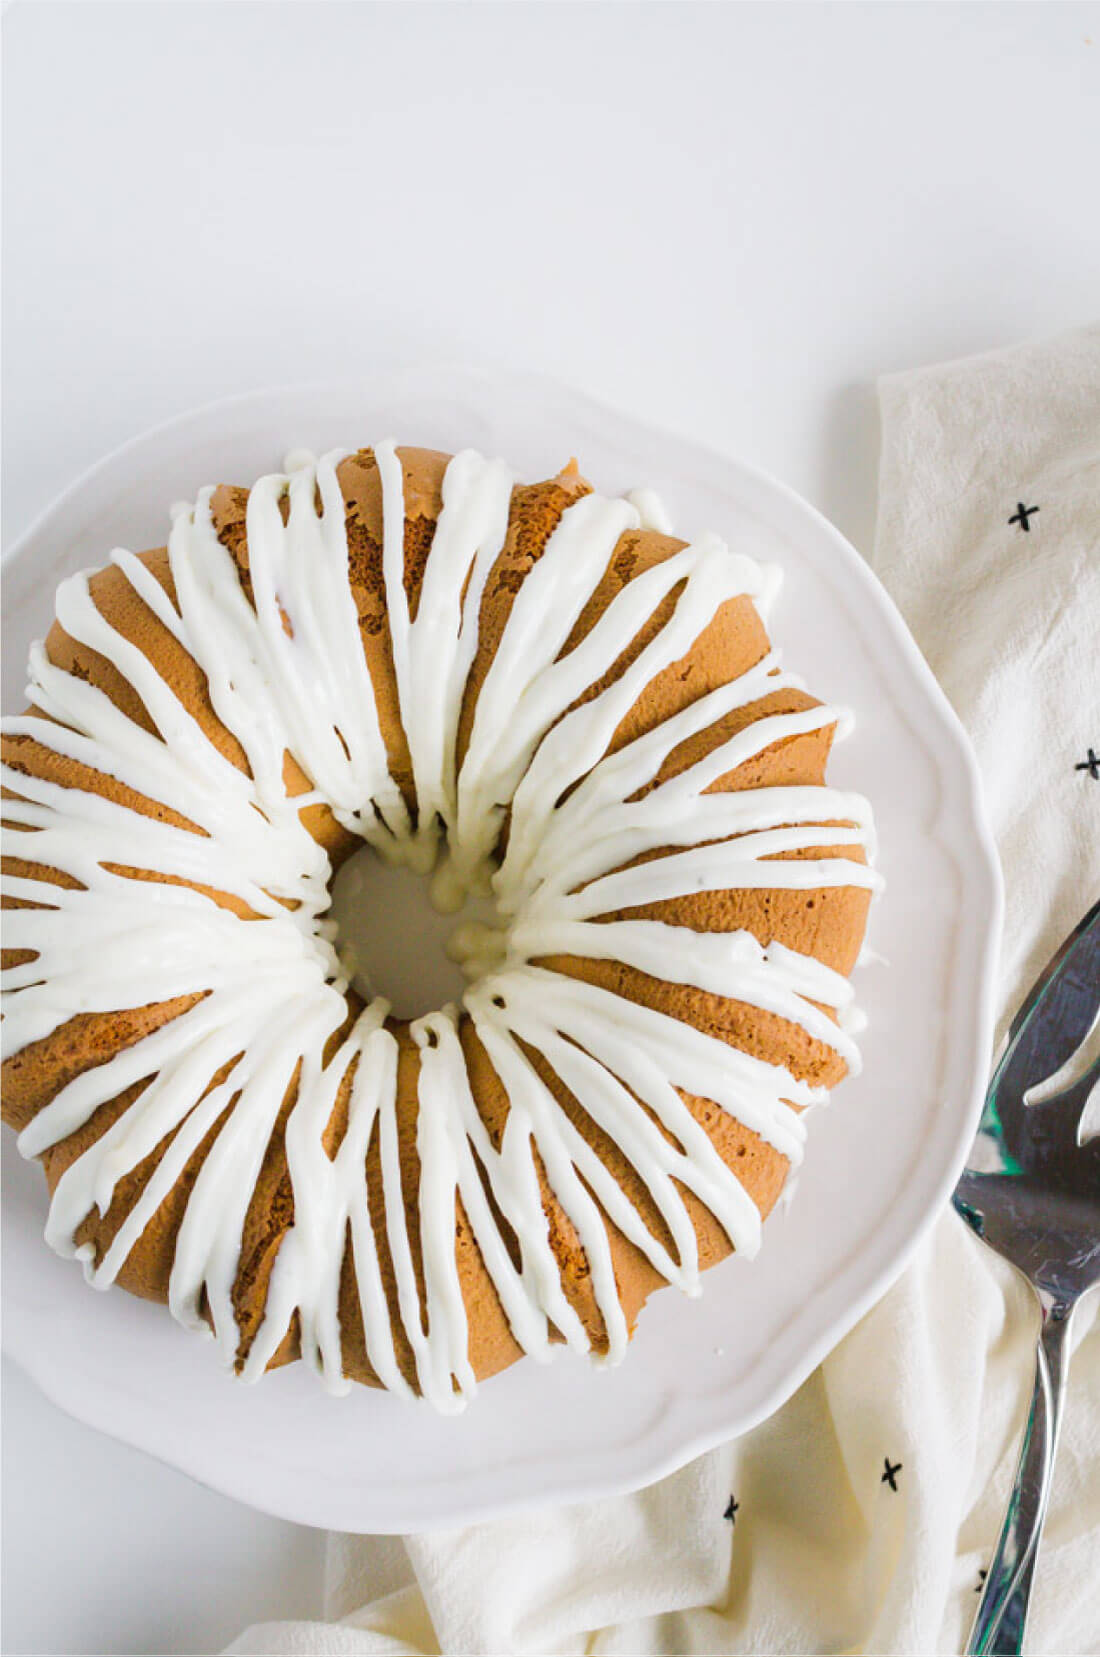 Pistachio Cake with Cream Cheese Glaze - a fun cake recipe for spring. from www.thirtyhandmadedays.com